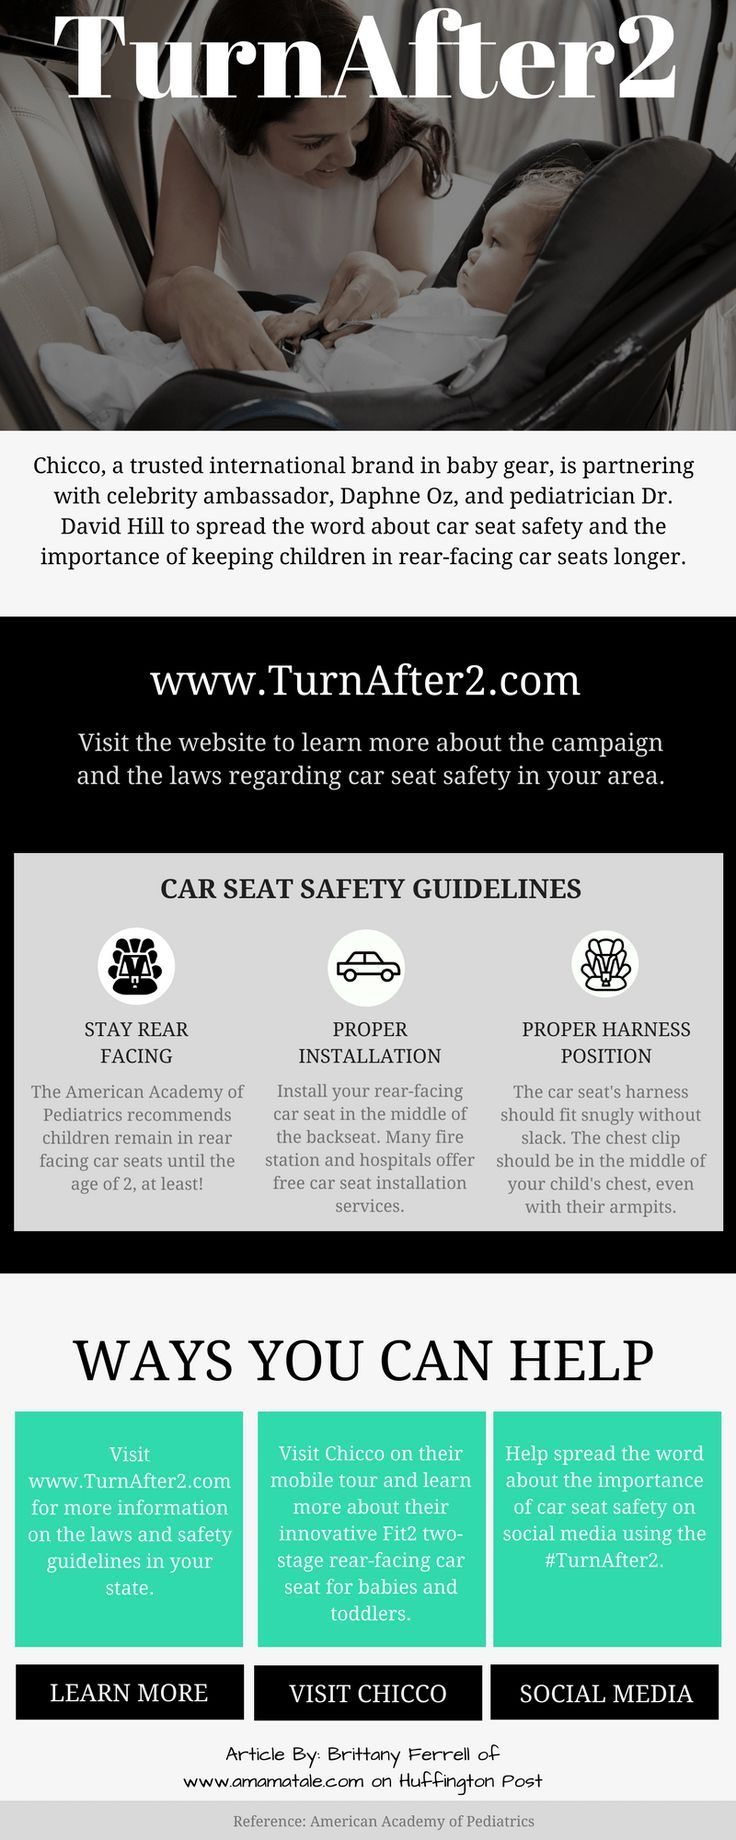 Turn After 2 Campaign | Car Seat Safety Guidelines and Tips | Daphne Oz Celebrity Mom Ambassador | Chicco Fit2 Car Seat | From: www.amamatale.com and Huffington Post